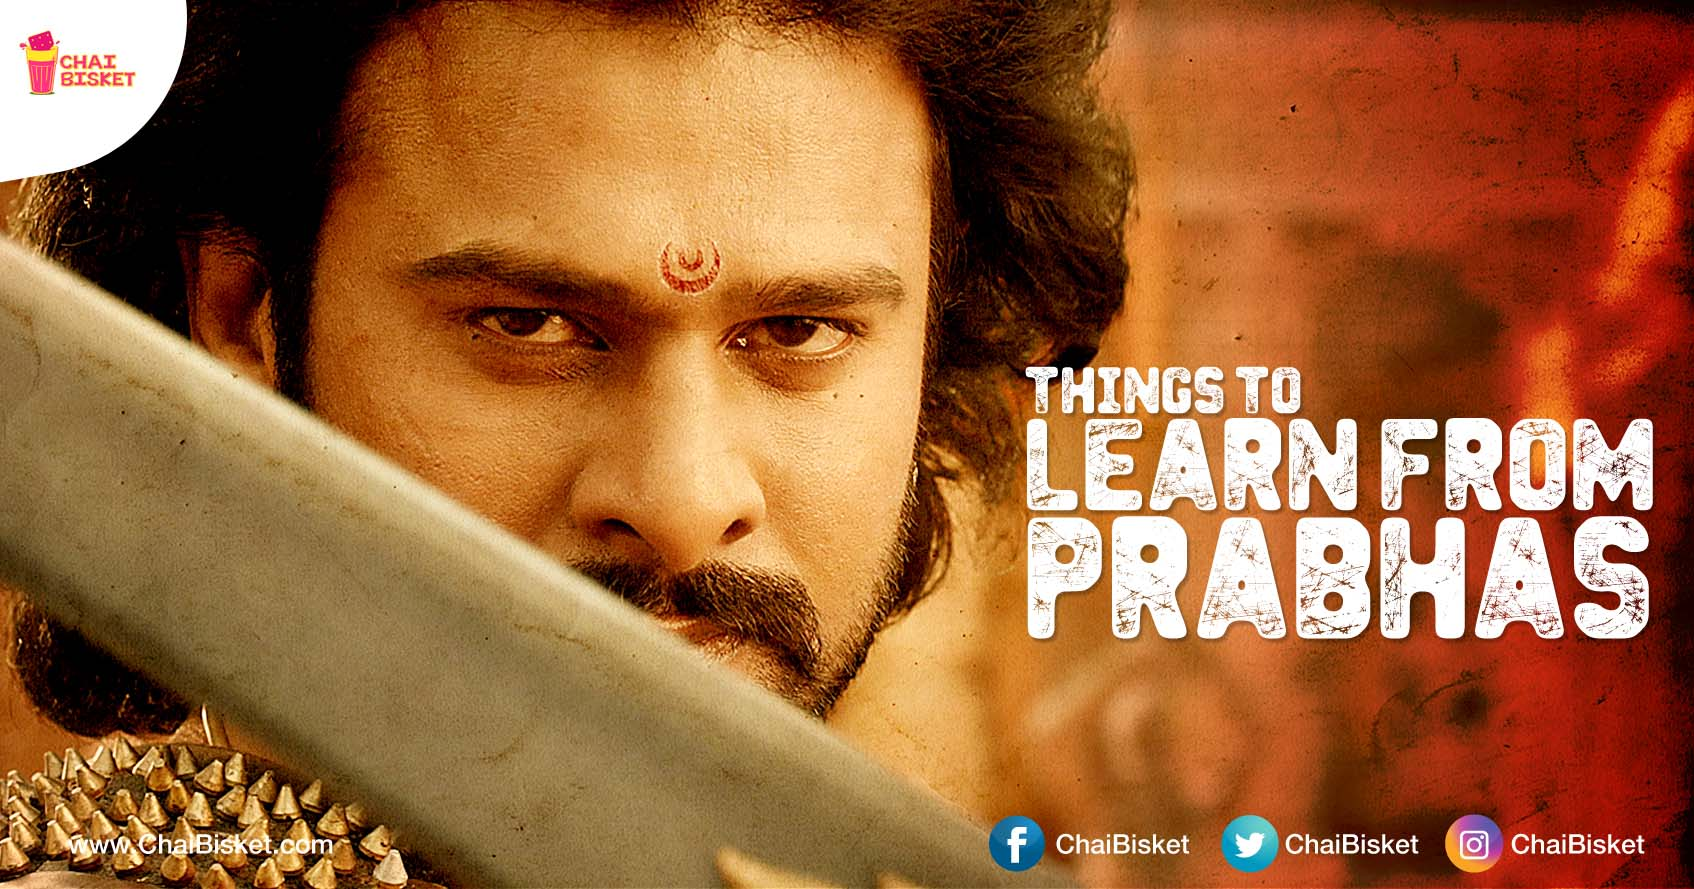 8 things that every one can learn from darling prabhas about passion